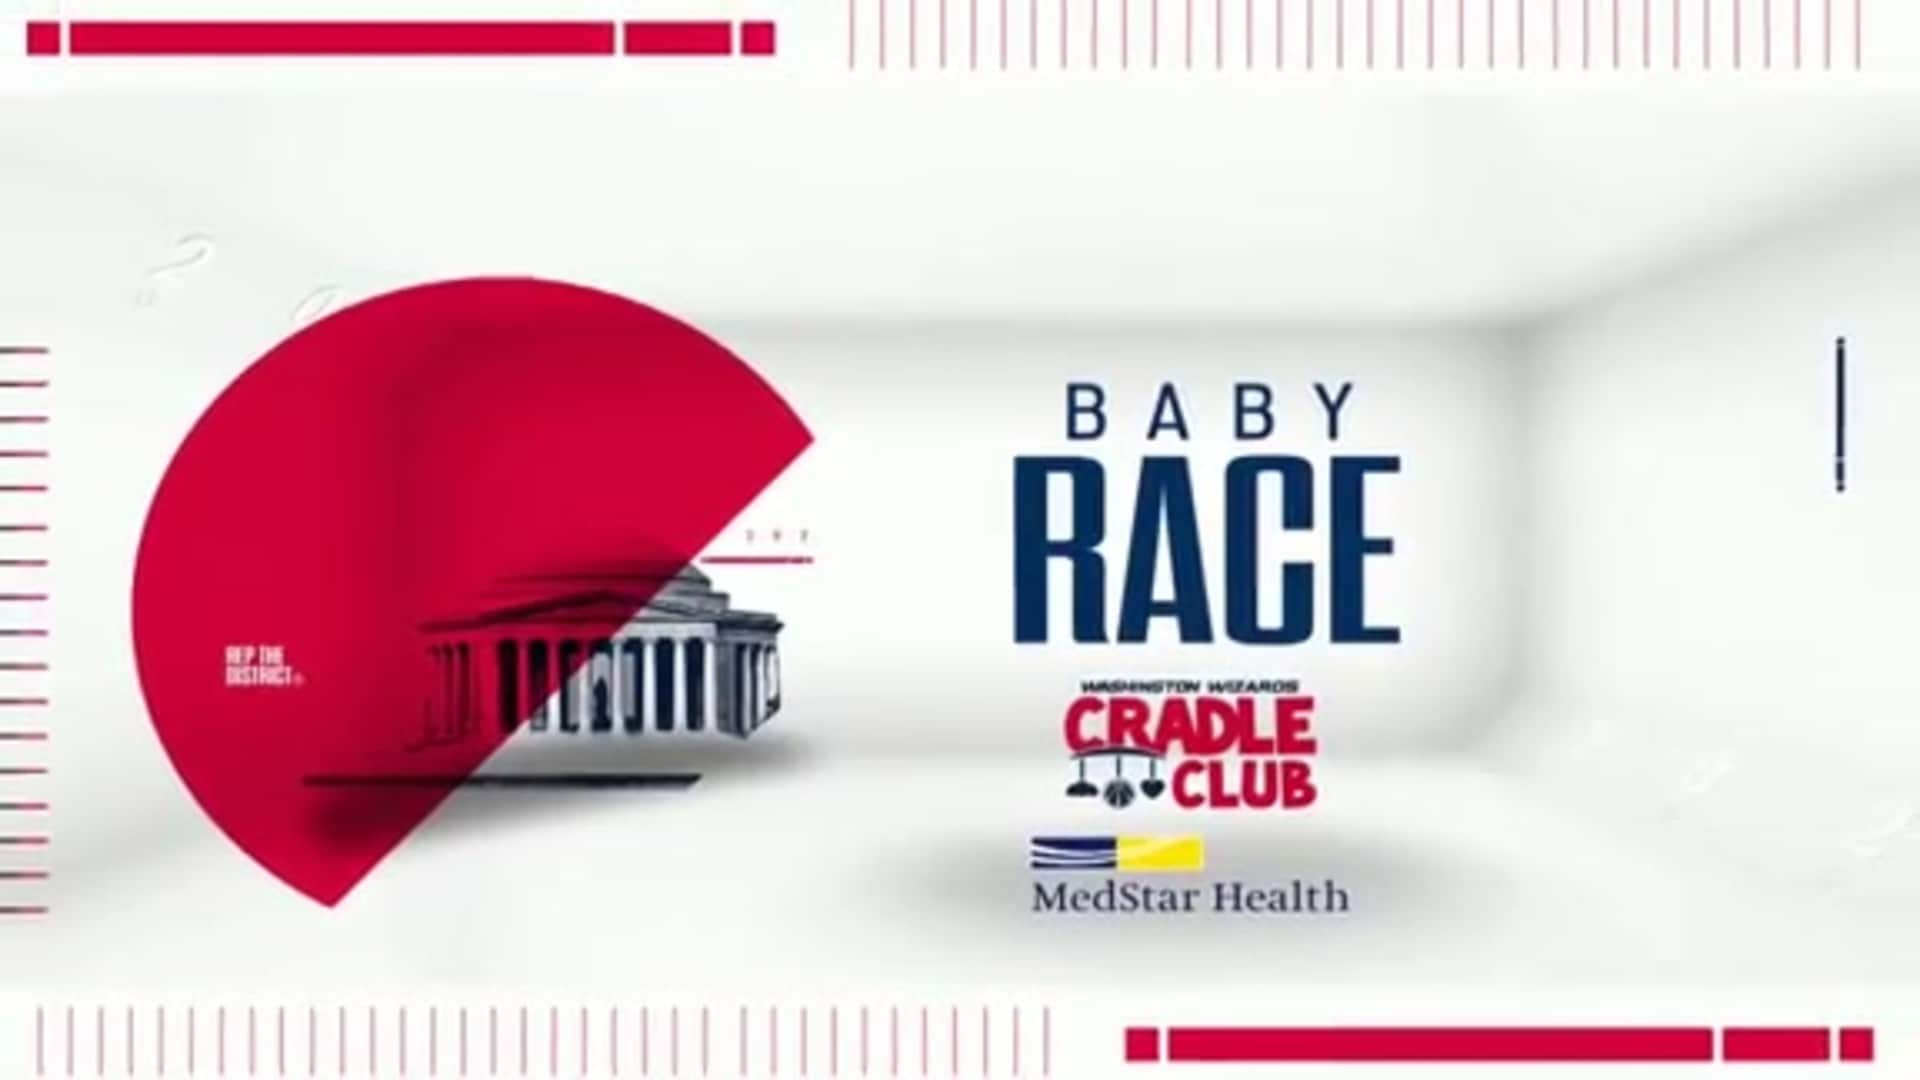 Wizards Kids Day Baby Race - 1/12/20